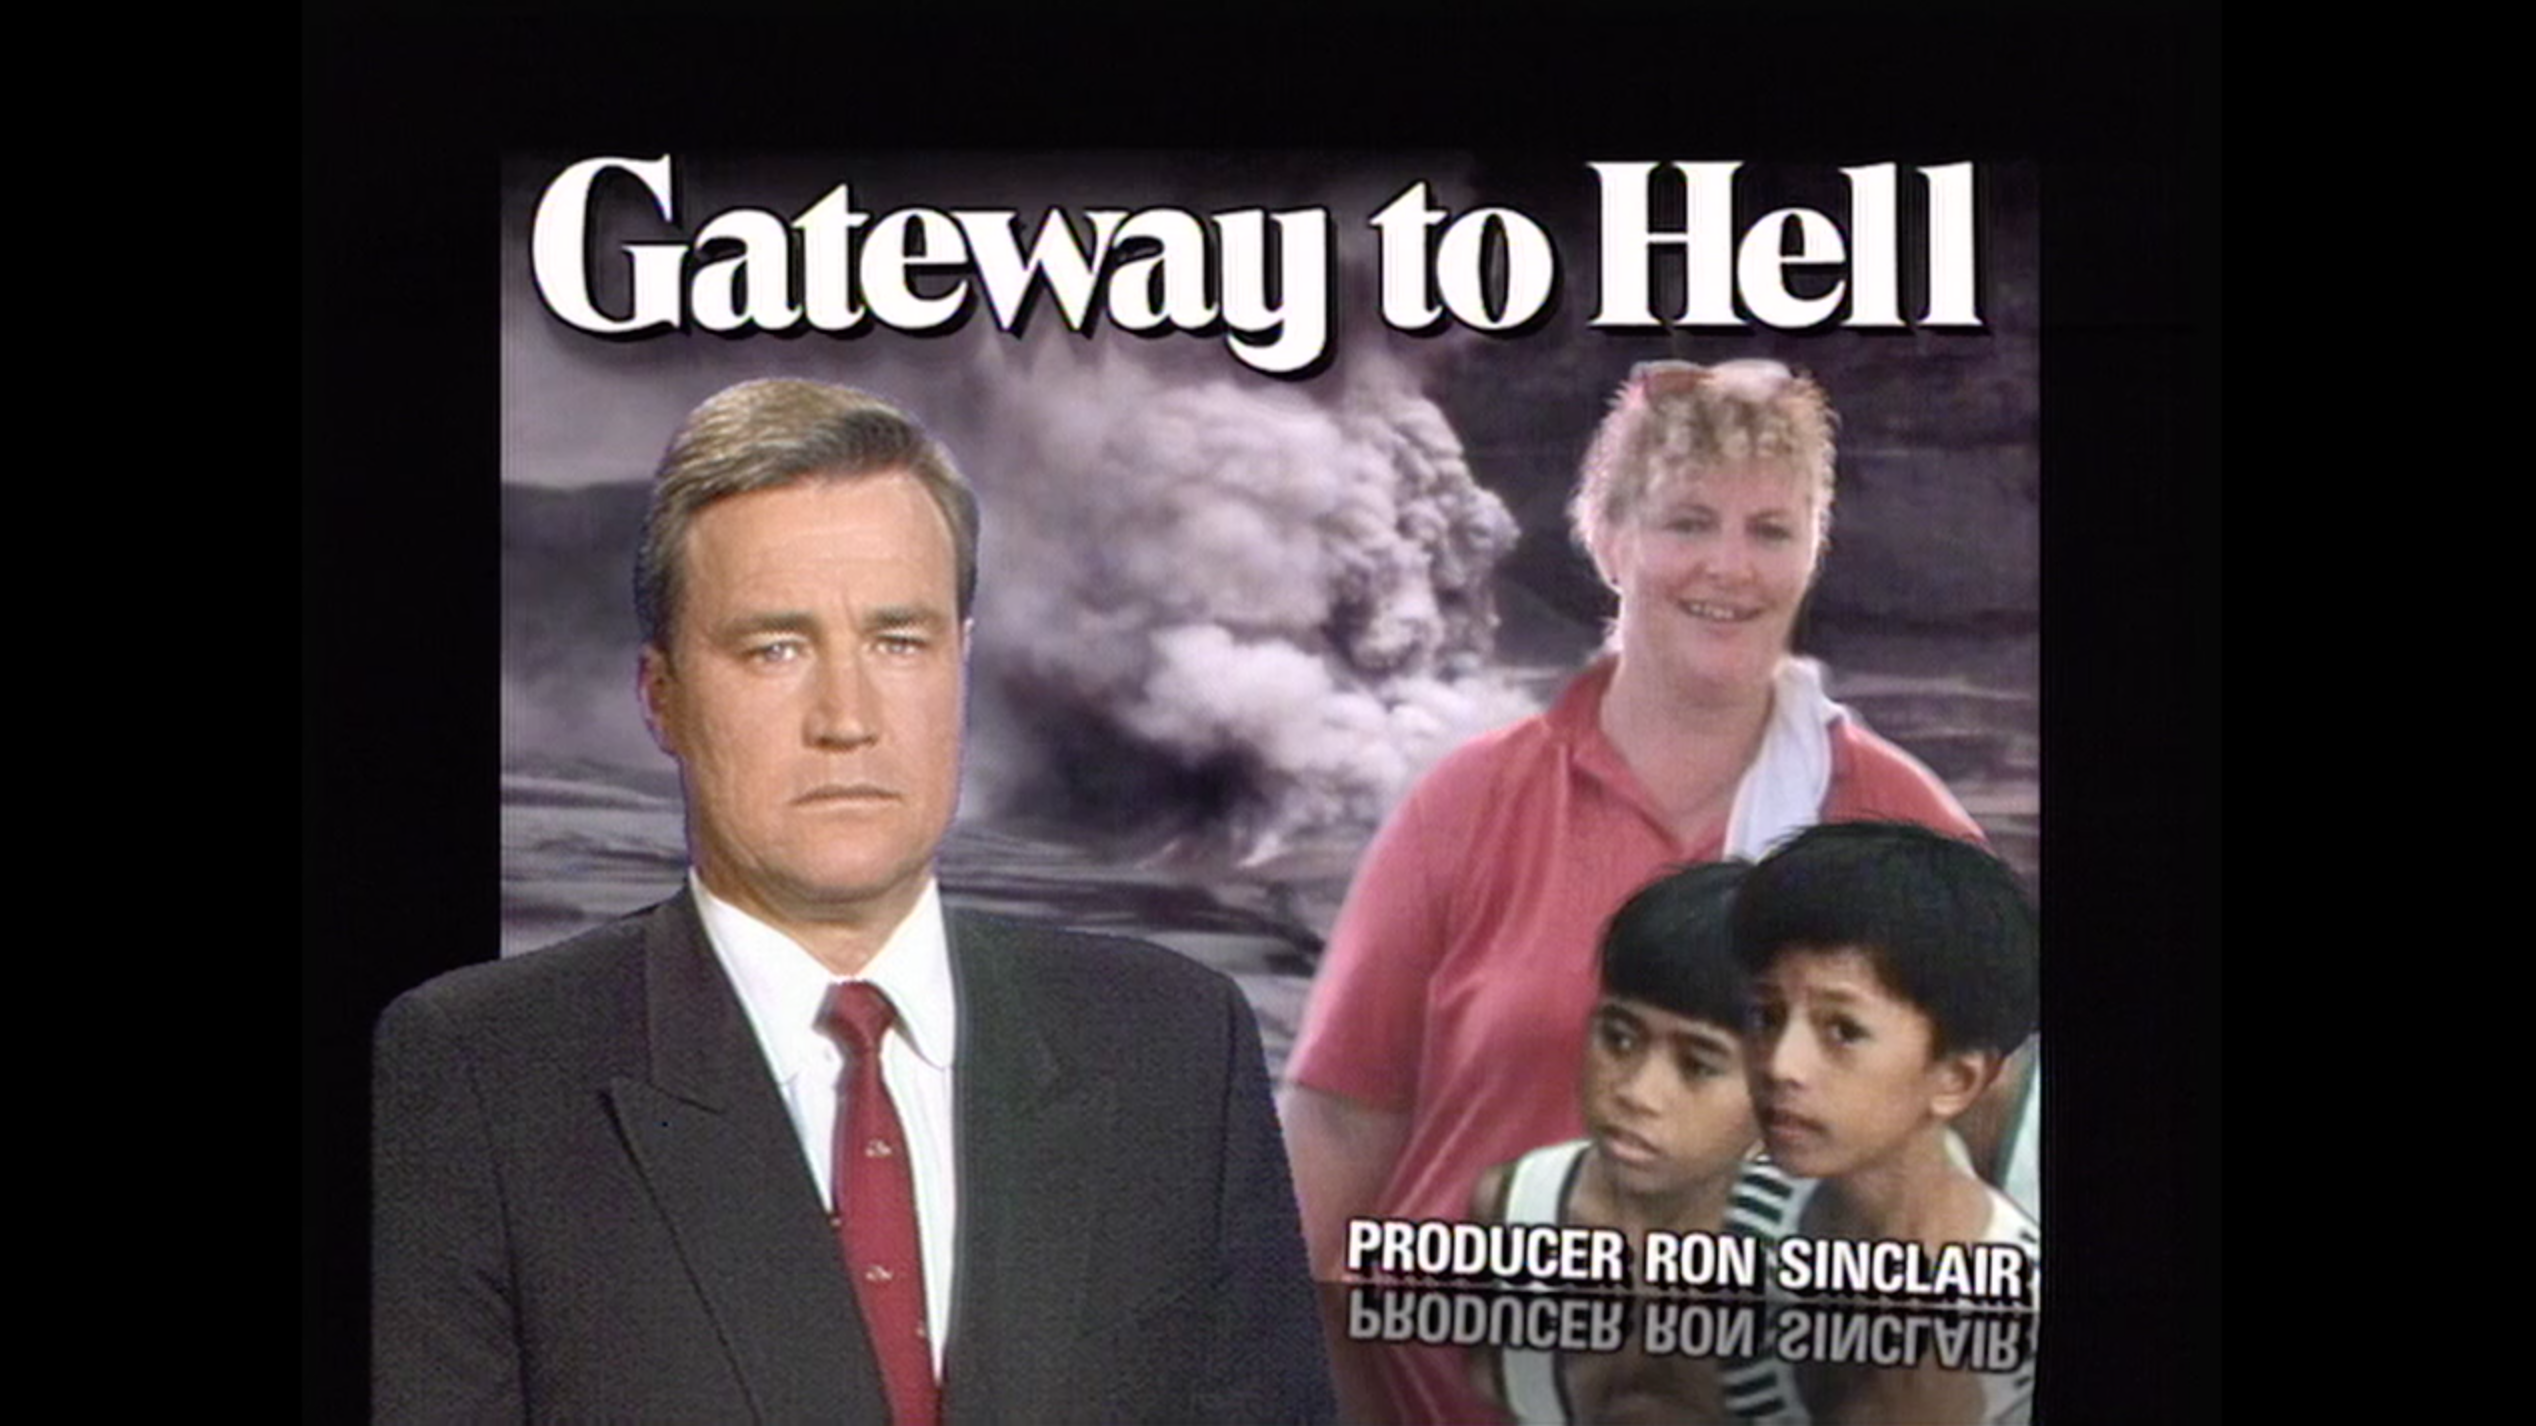 Gateway to Hell (1992)